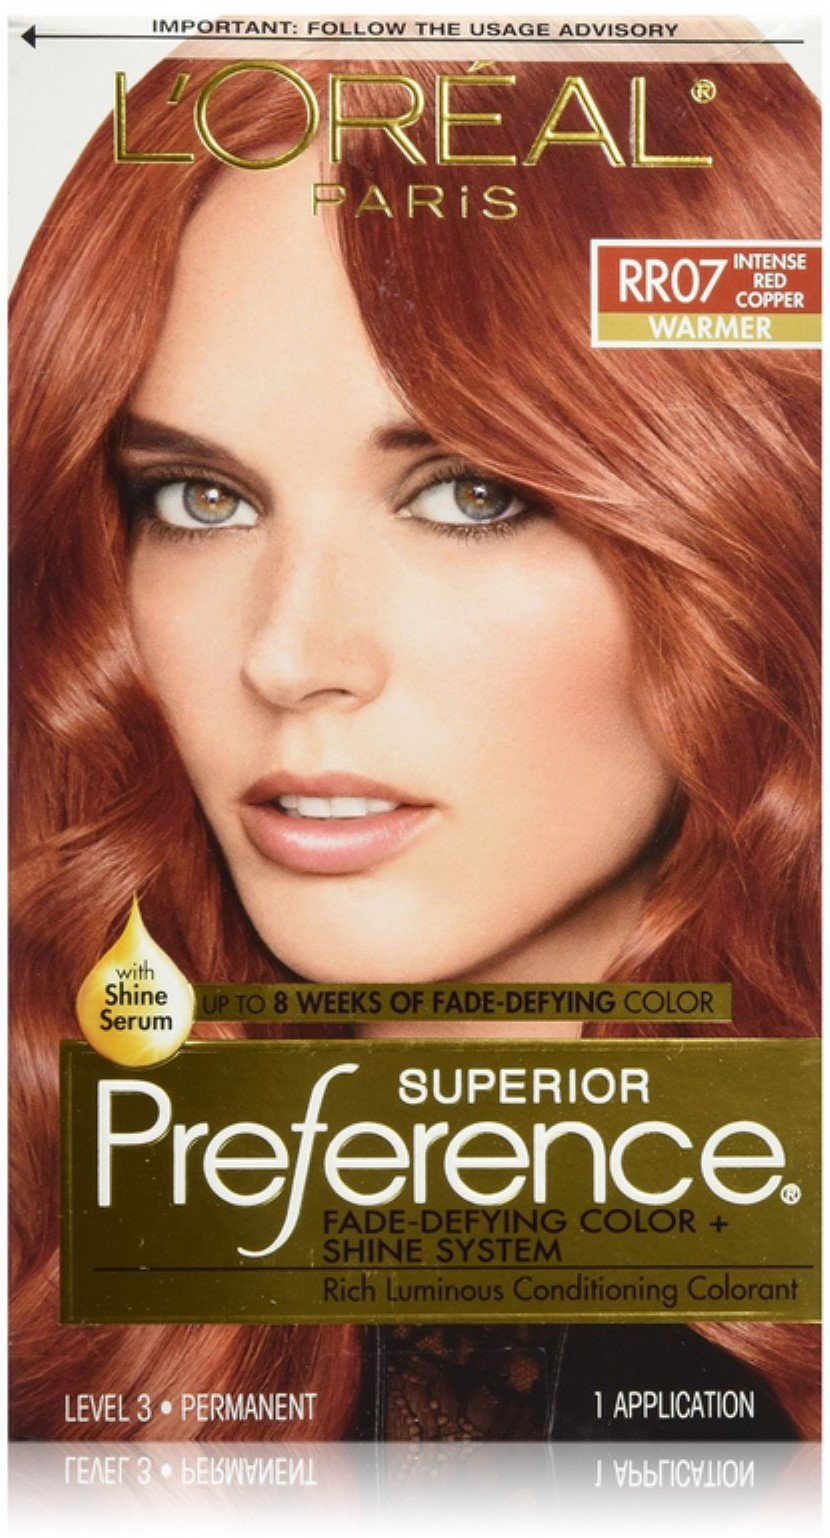 Pref Red Copper Rr-07 Size 1ct L'Oreal Preference Hair Color Intense Red Copper #Rr07